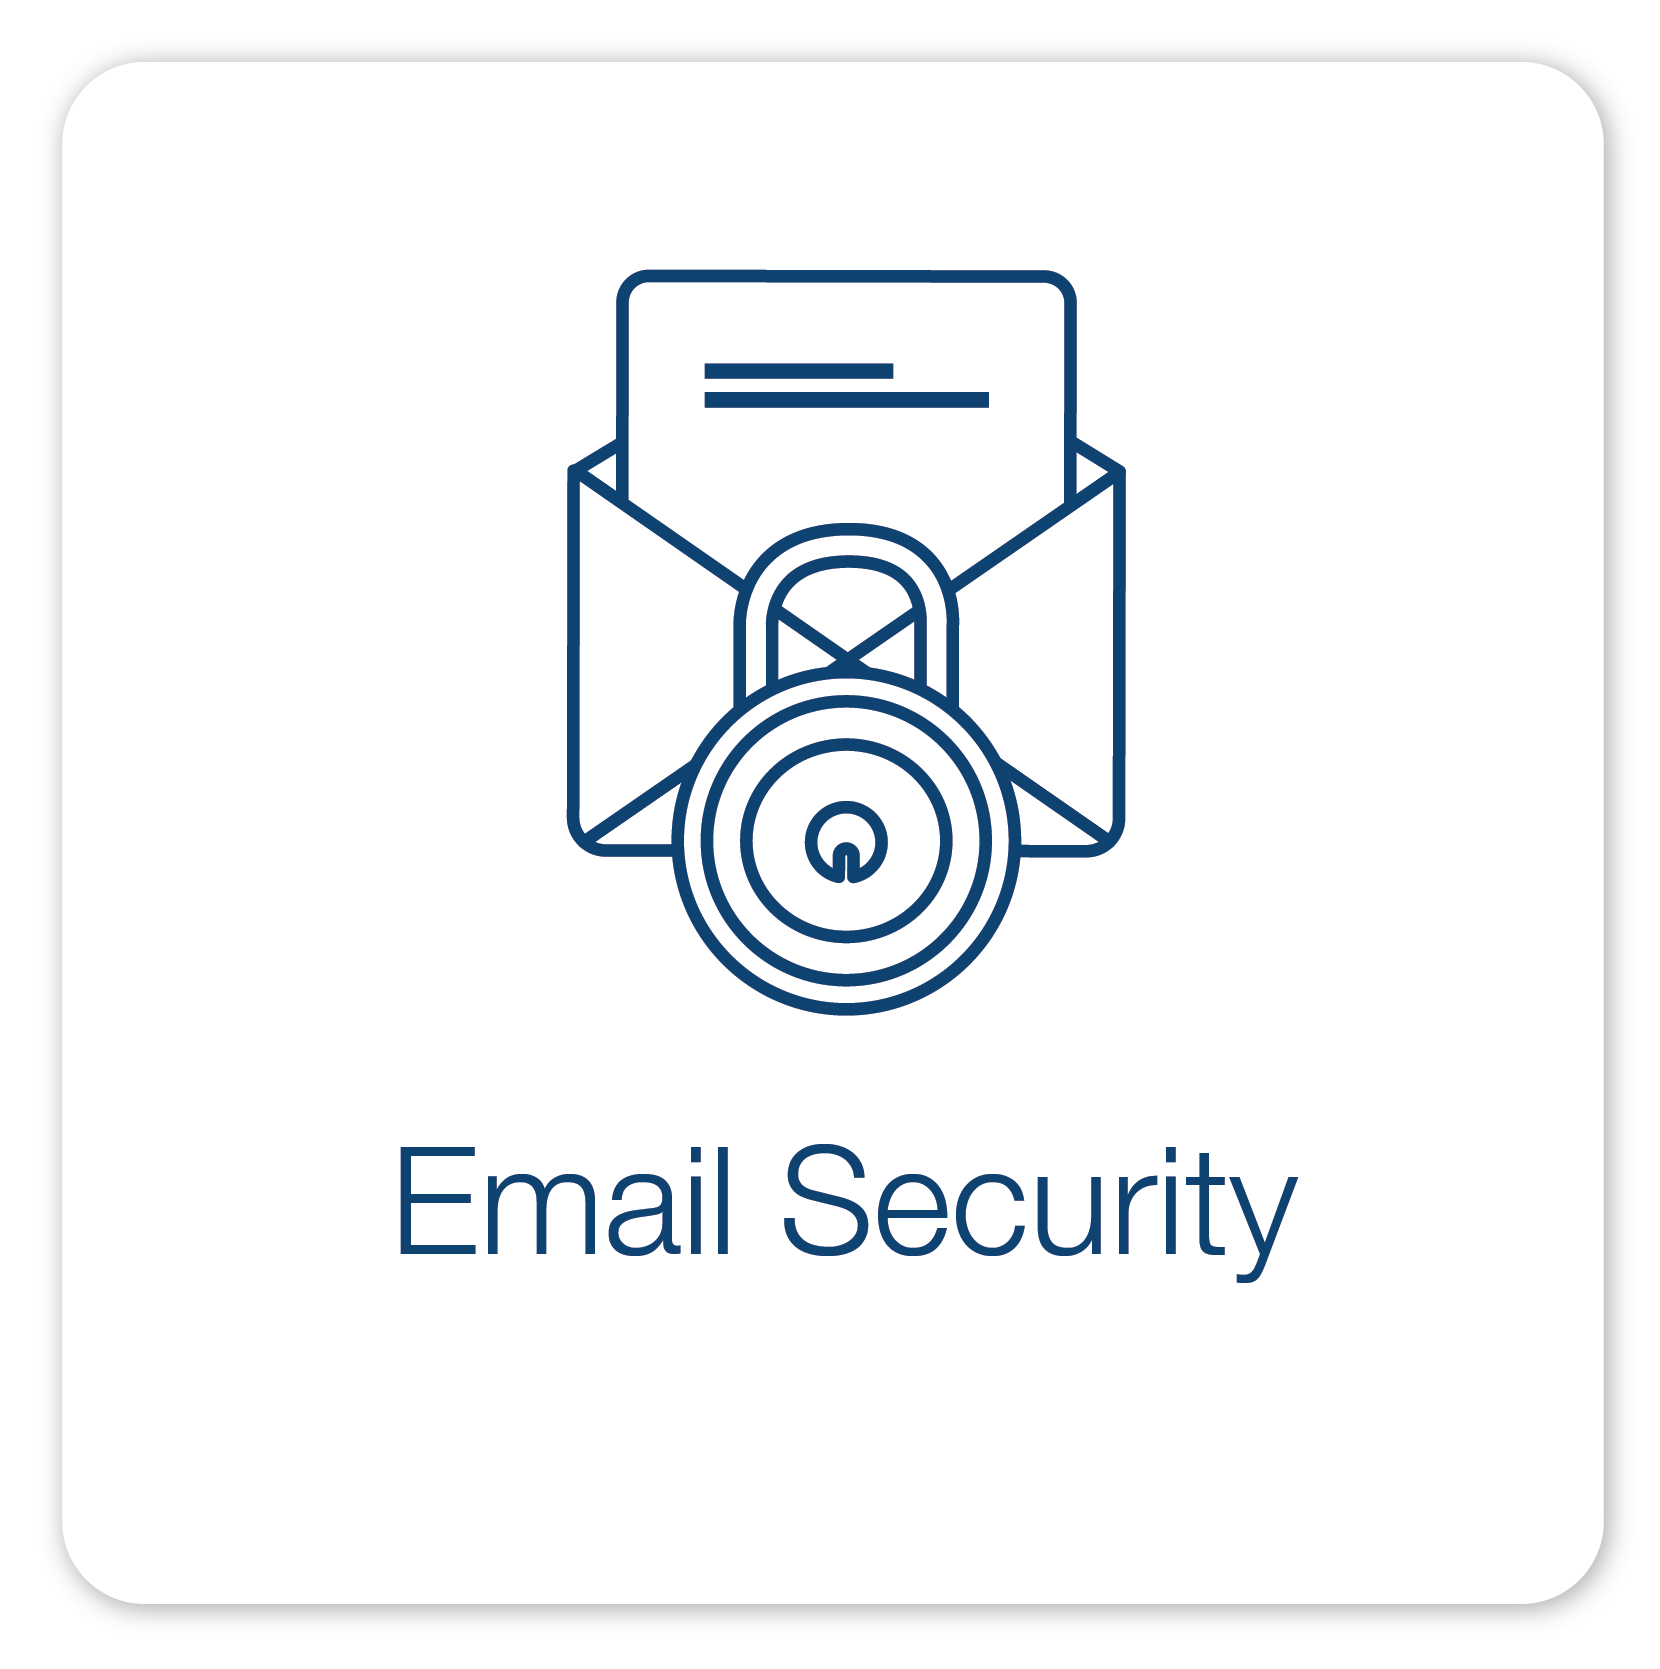 Email Protection from Malware, Phishing, Spear Phishing, and Unknown Threats